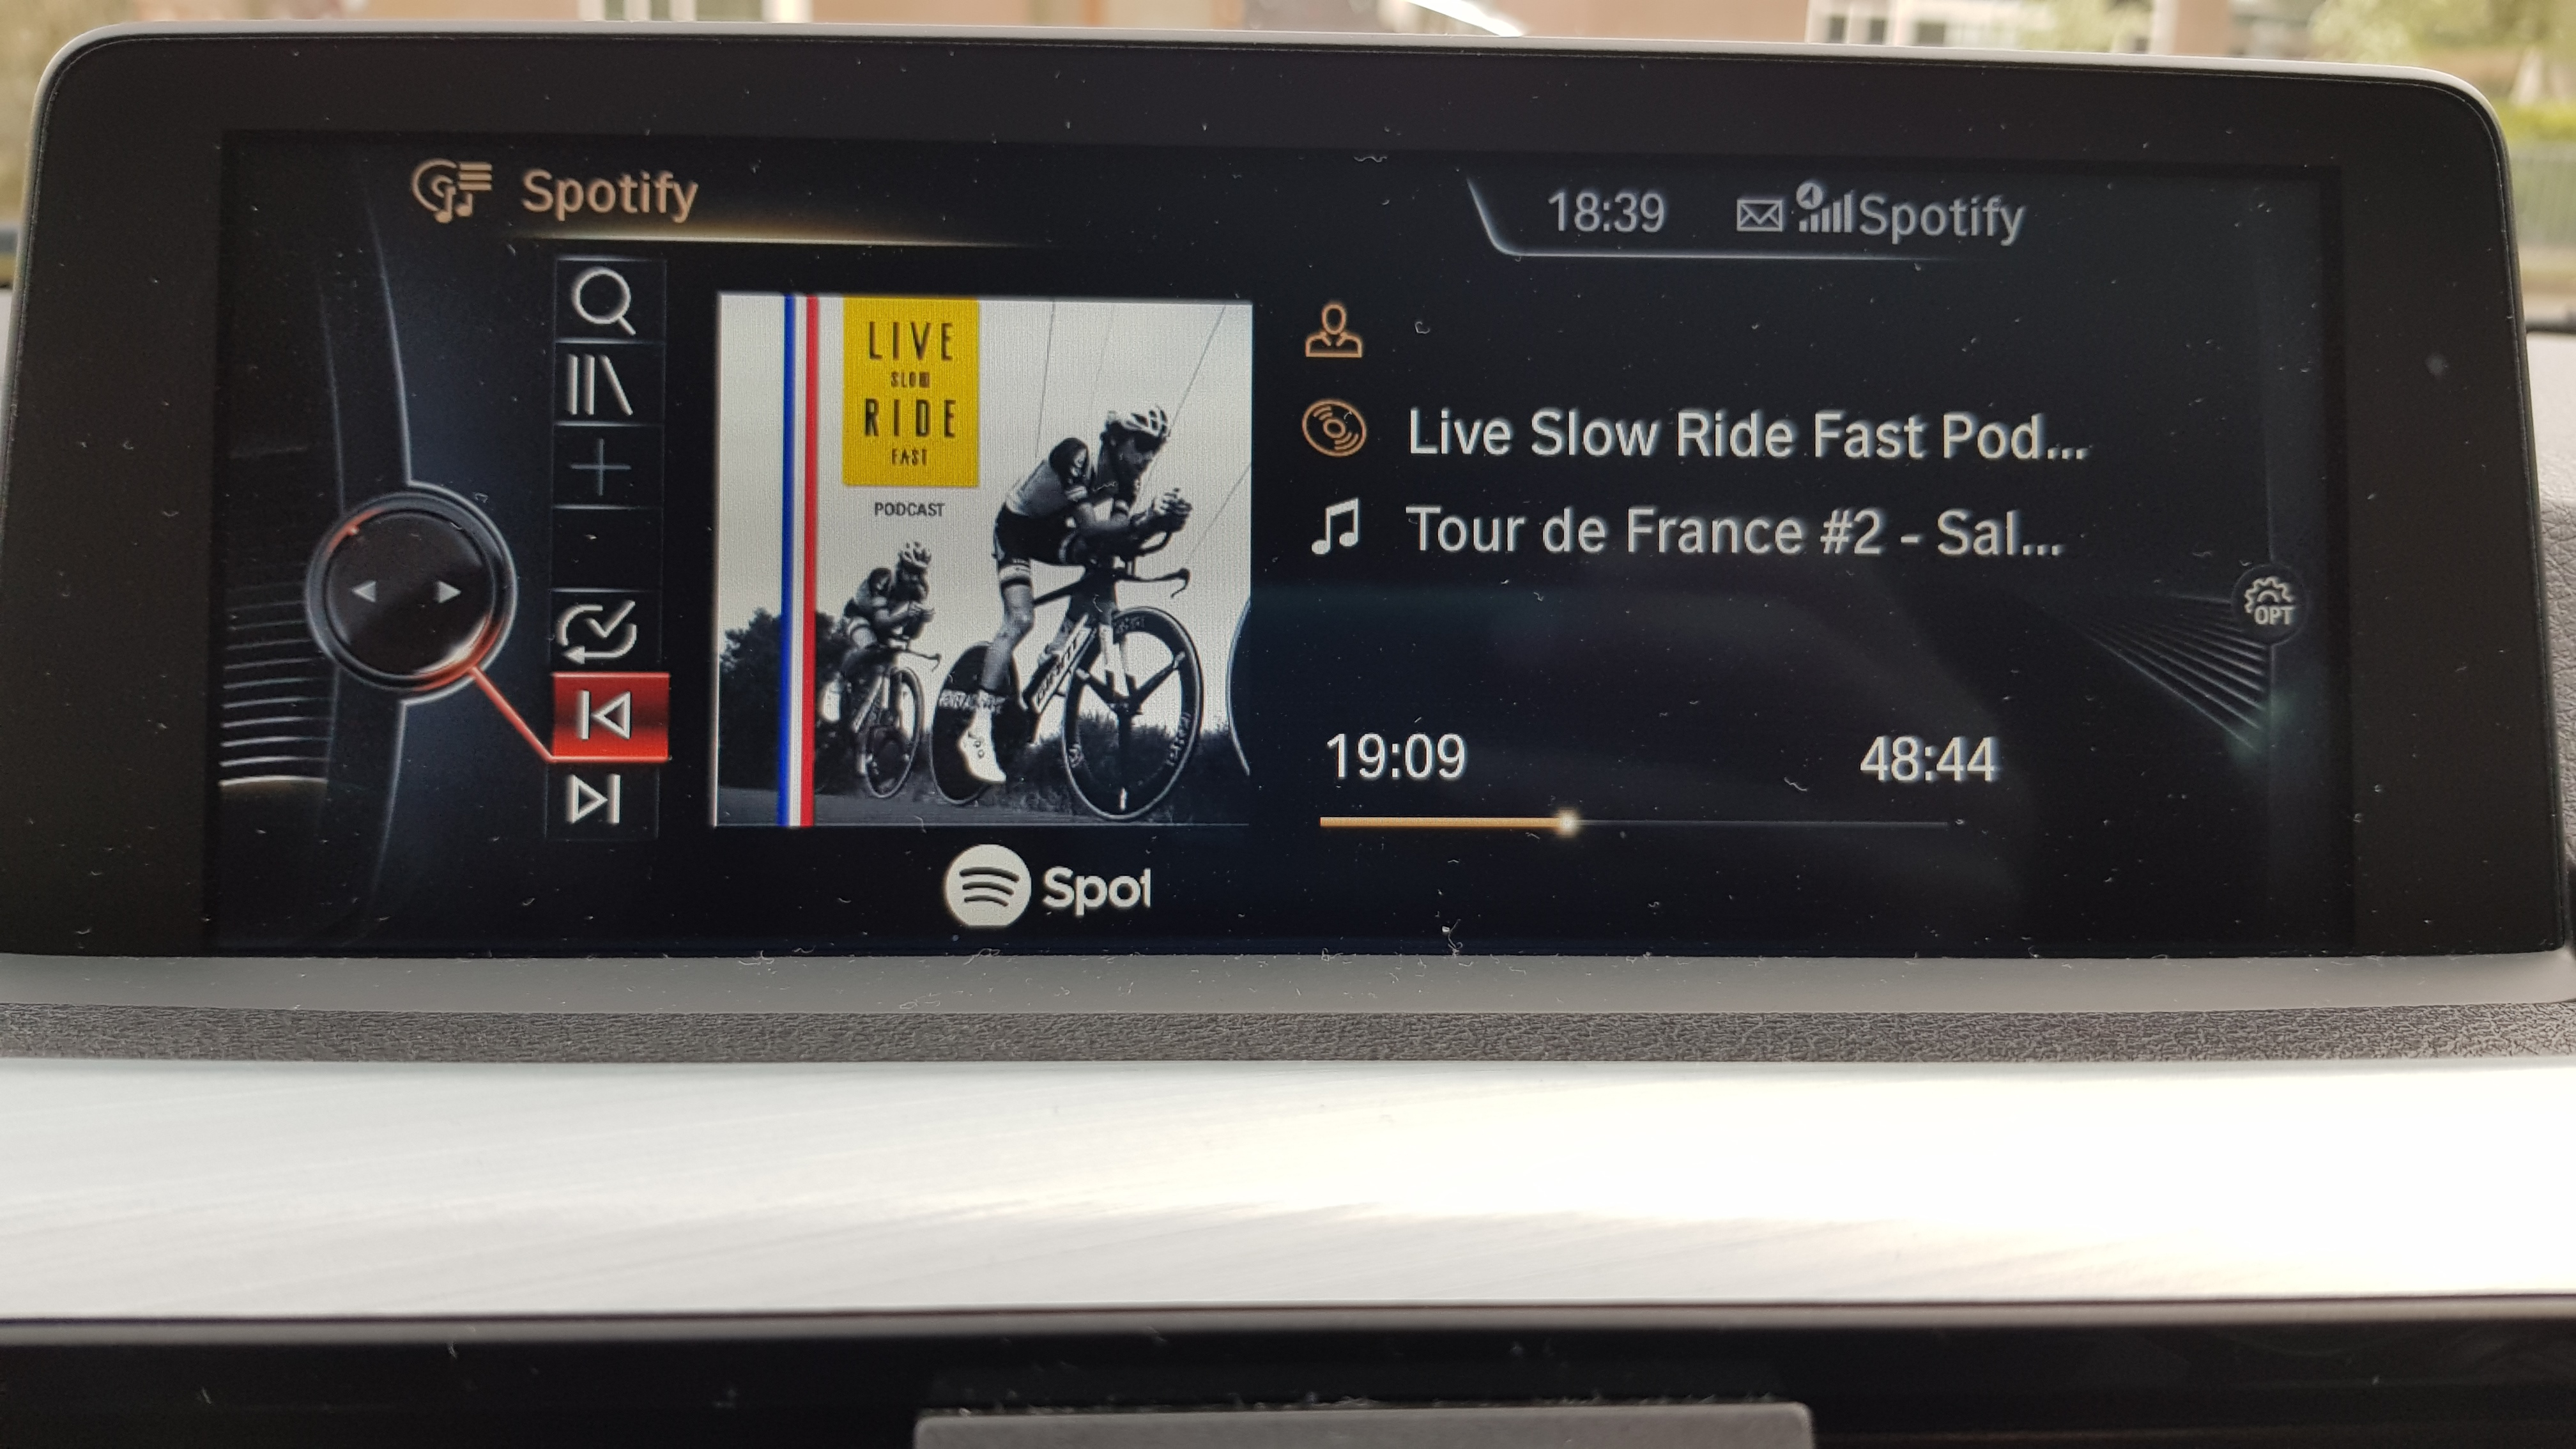 BMW ConnectedDrive not working - The Spotify Community